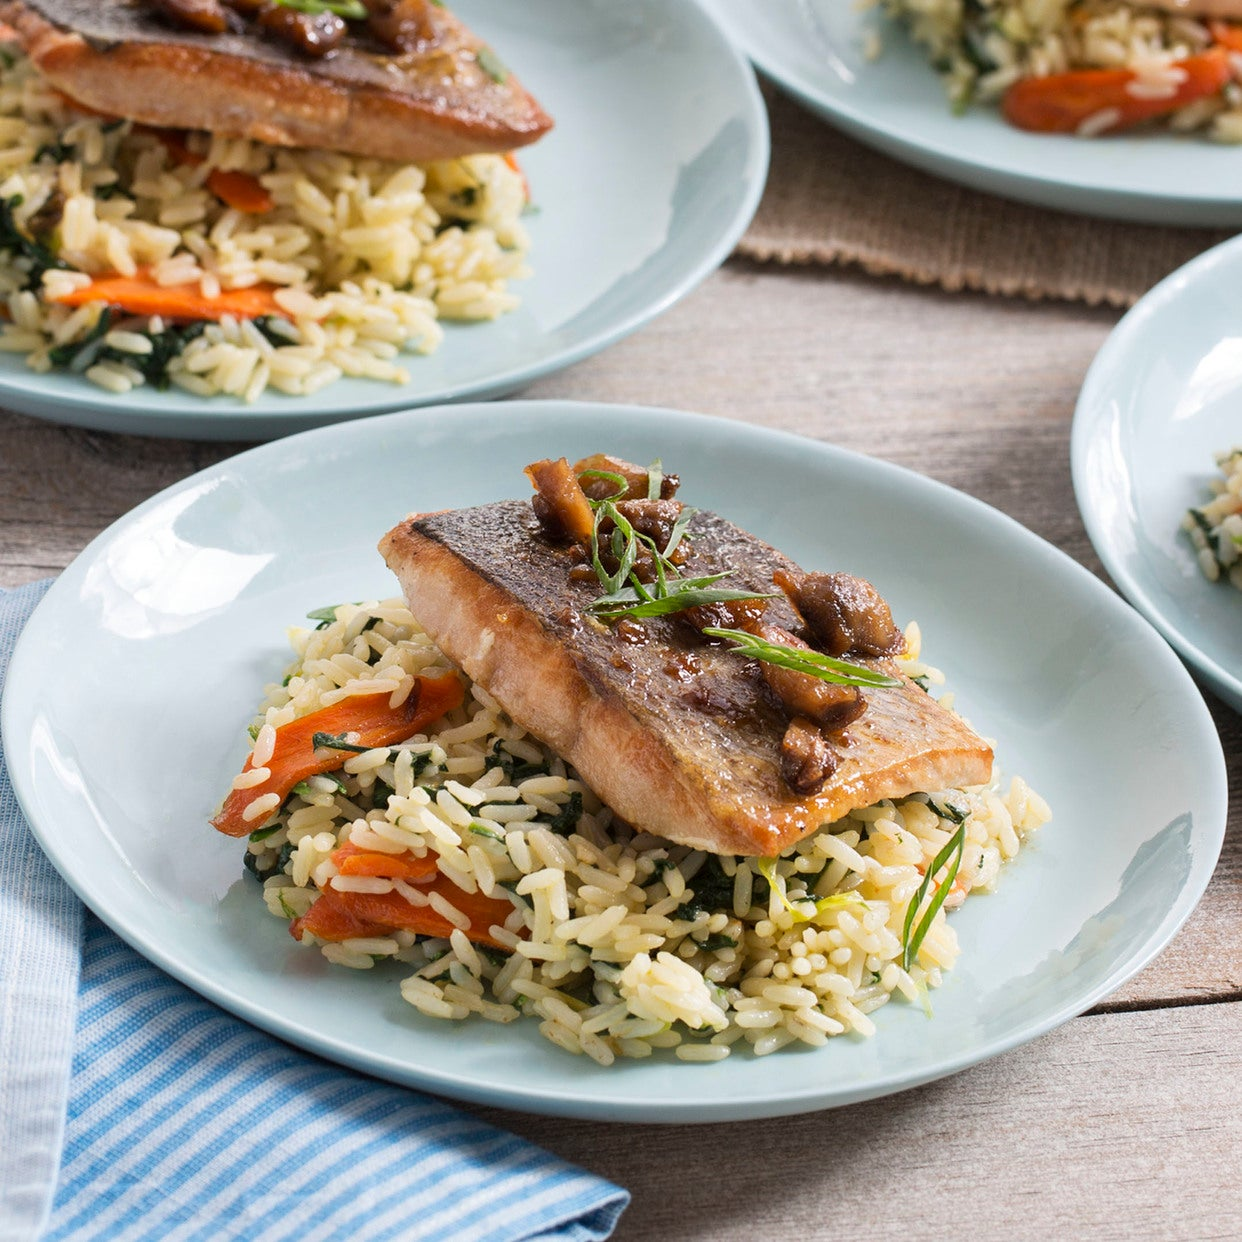 Seared Salmon & Chestnut-Butter Sauce with Carrots, Spinach & Rice